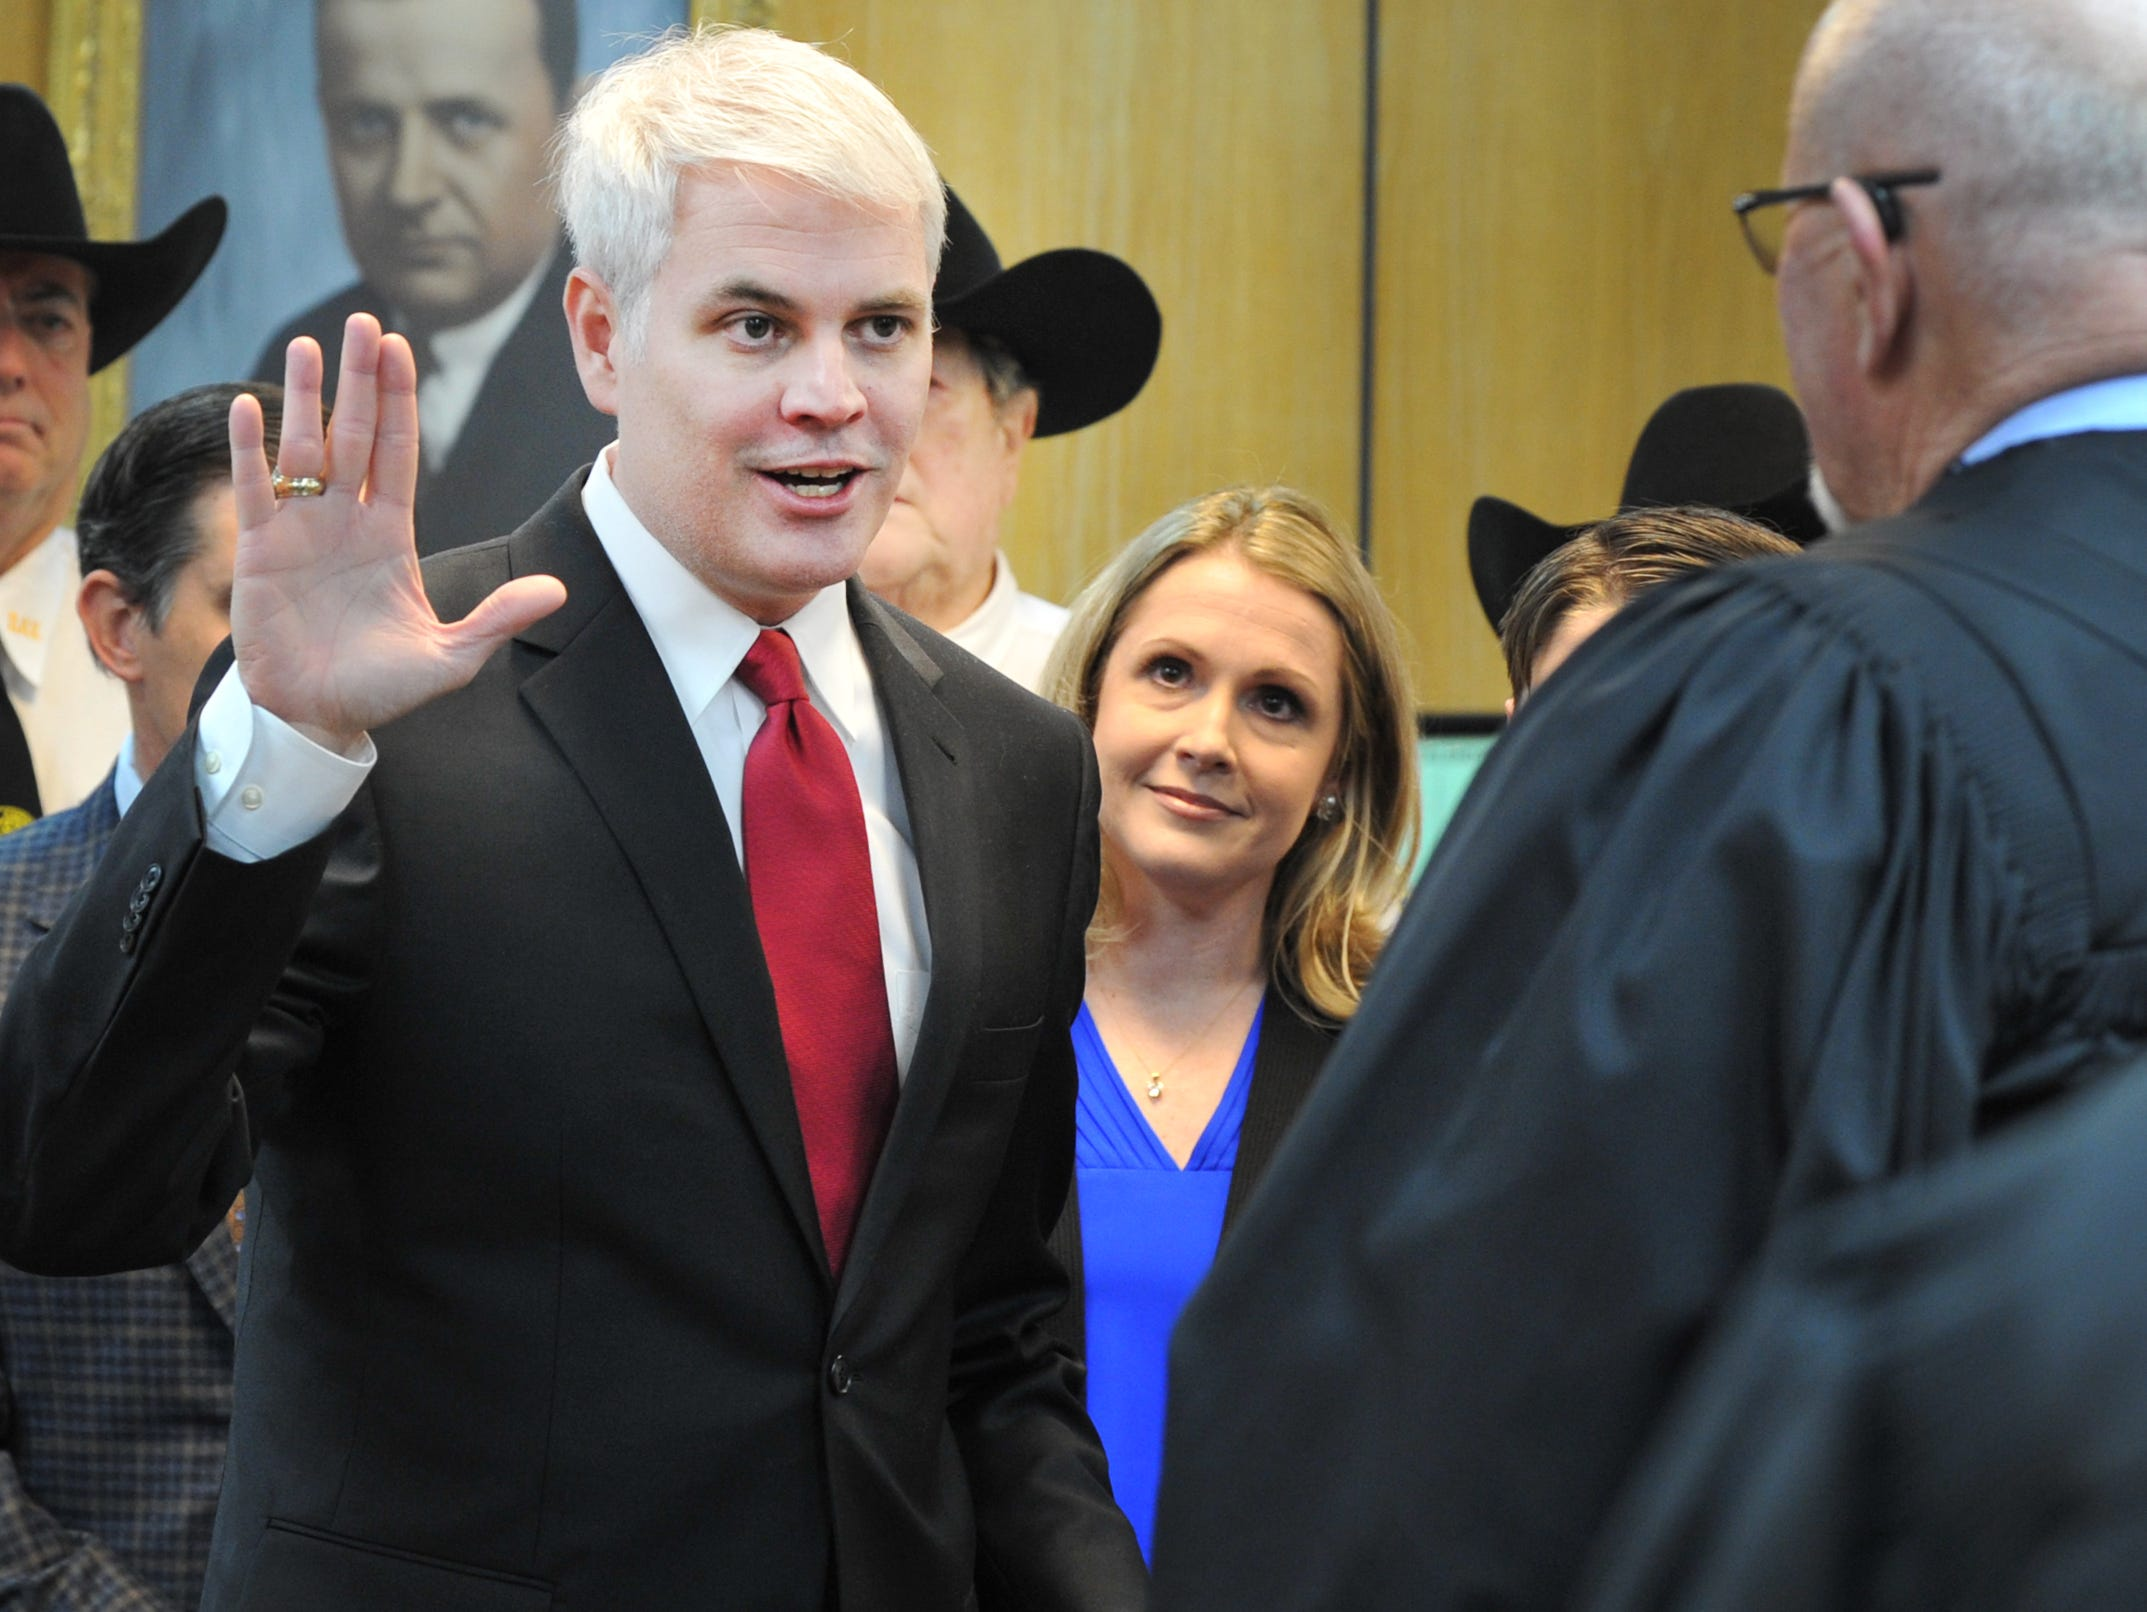 John Gillespie was sworn in as the Wichita County District Attorney Tuesday morning in the 30th district courtroom during a ceremony held in the 30th district courtroom, Tuesday morning.